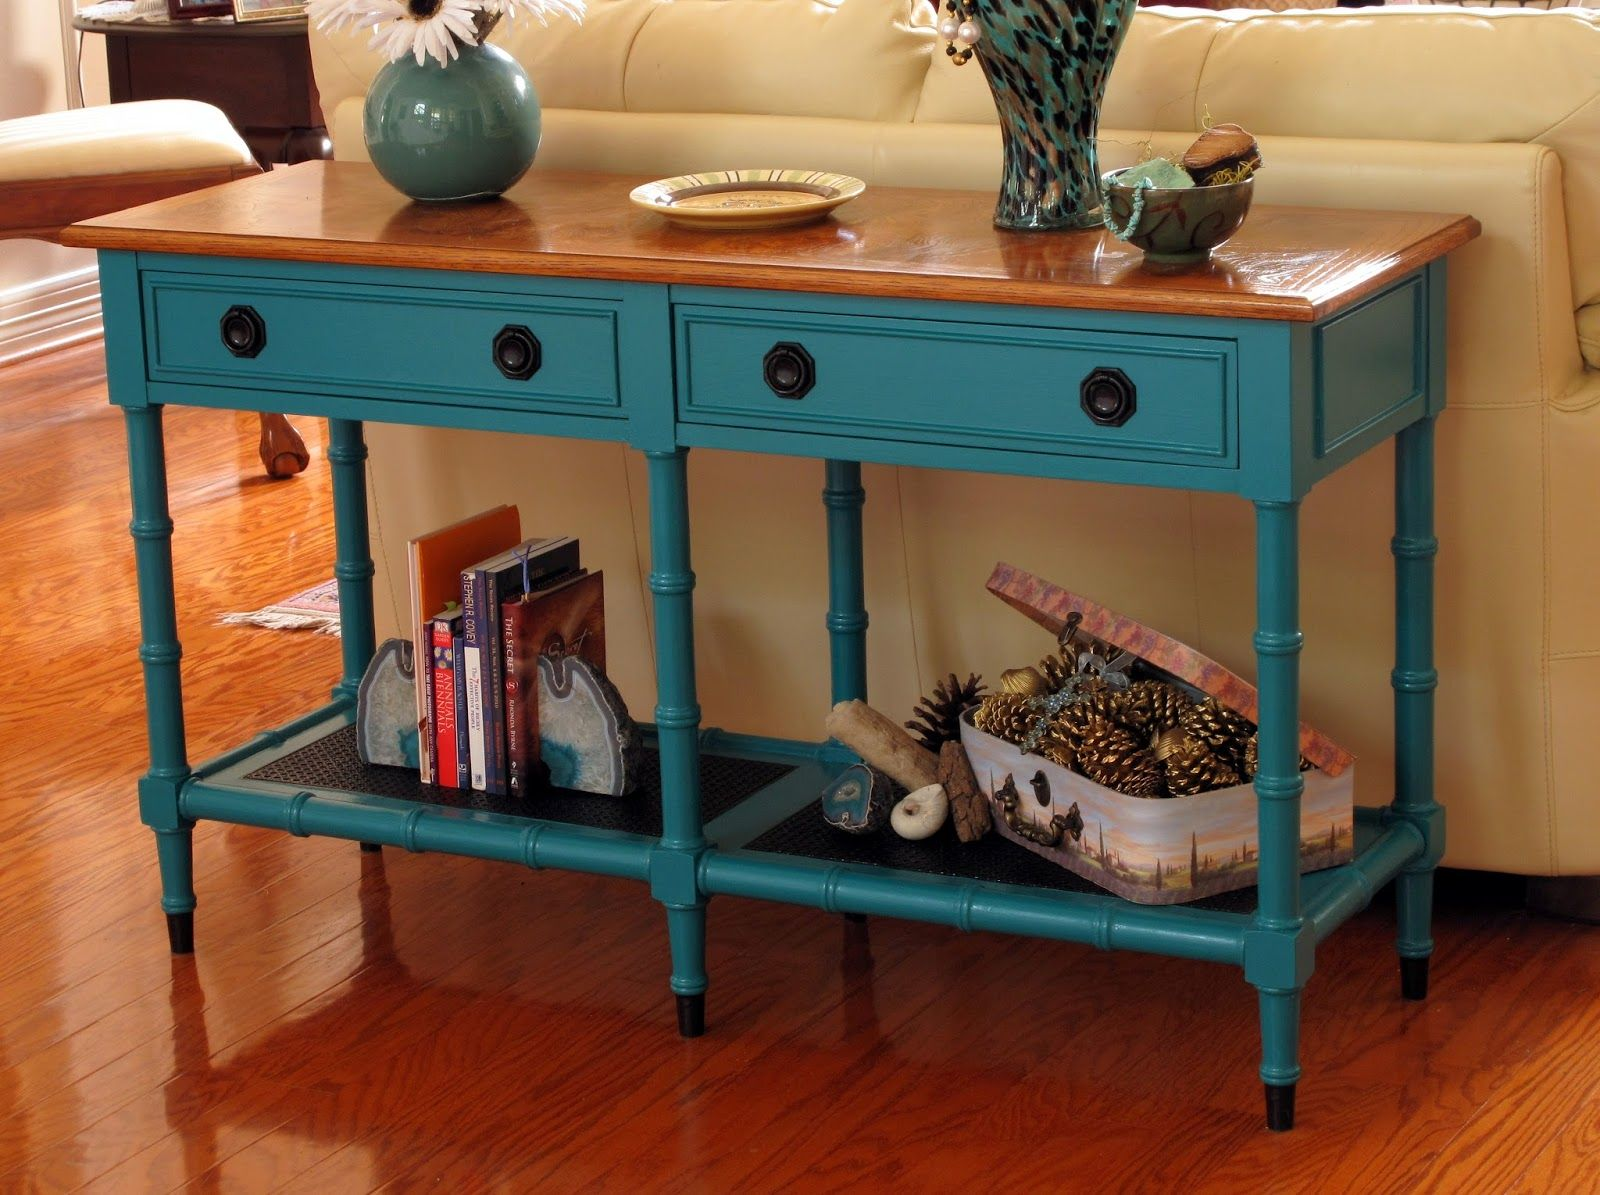 Just judy sofa table makeover furniture pinterest sofa just judy sofa table makeover and paint sofa table turquoise perfect for my charging station table geotapseo Image collections